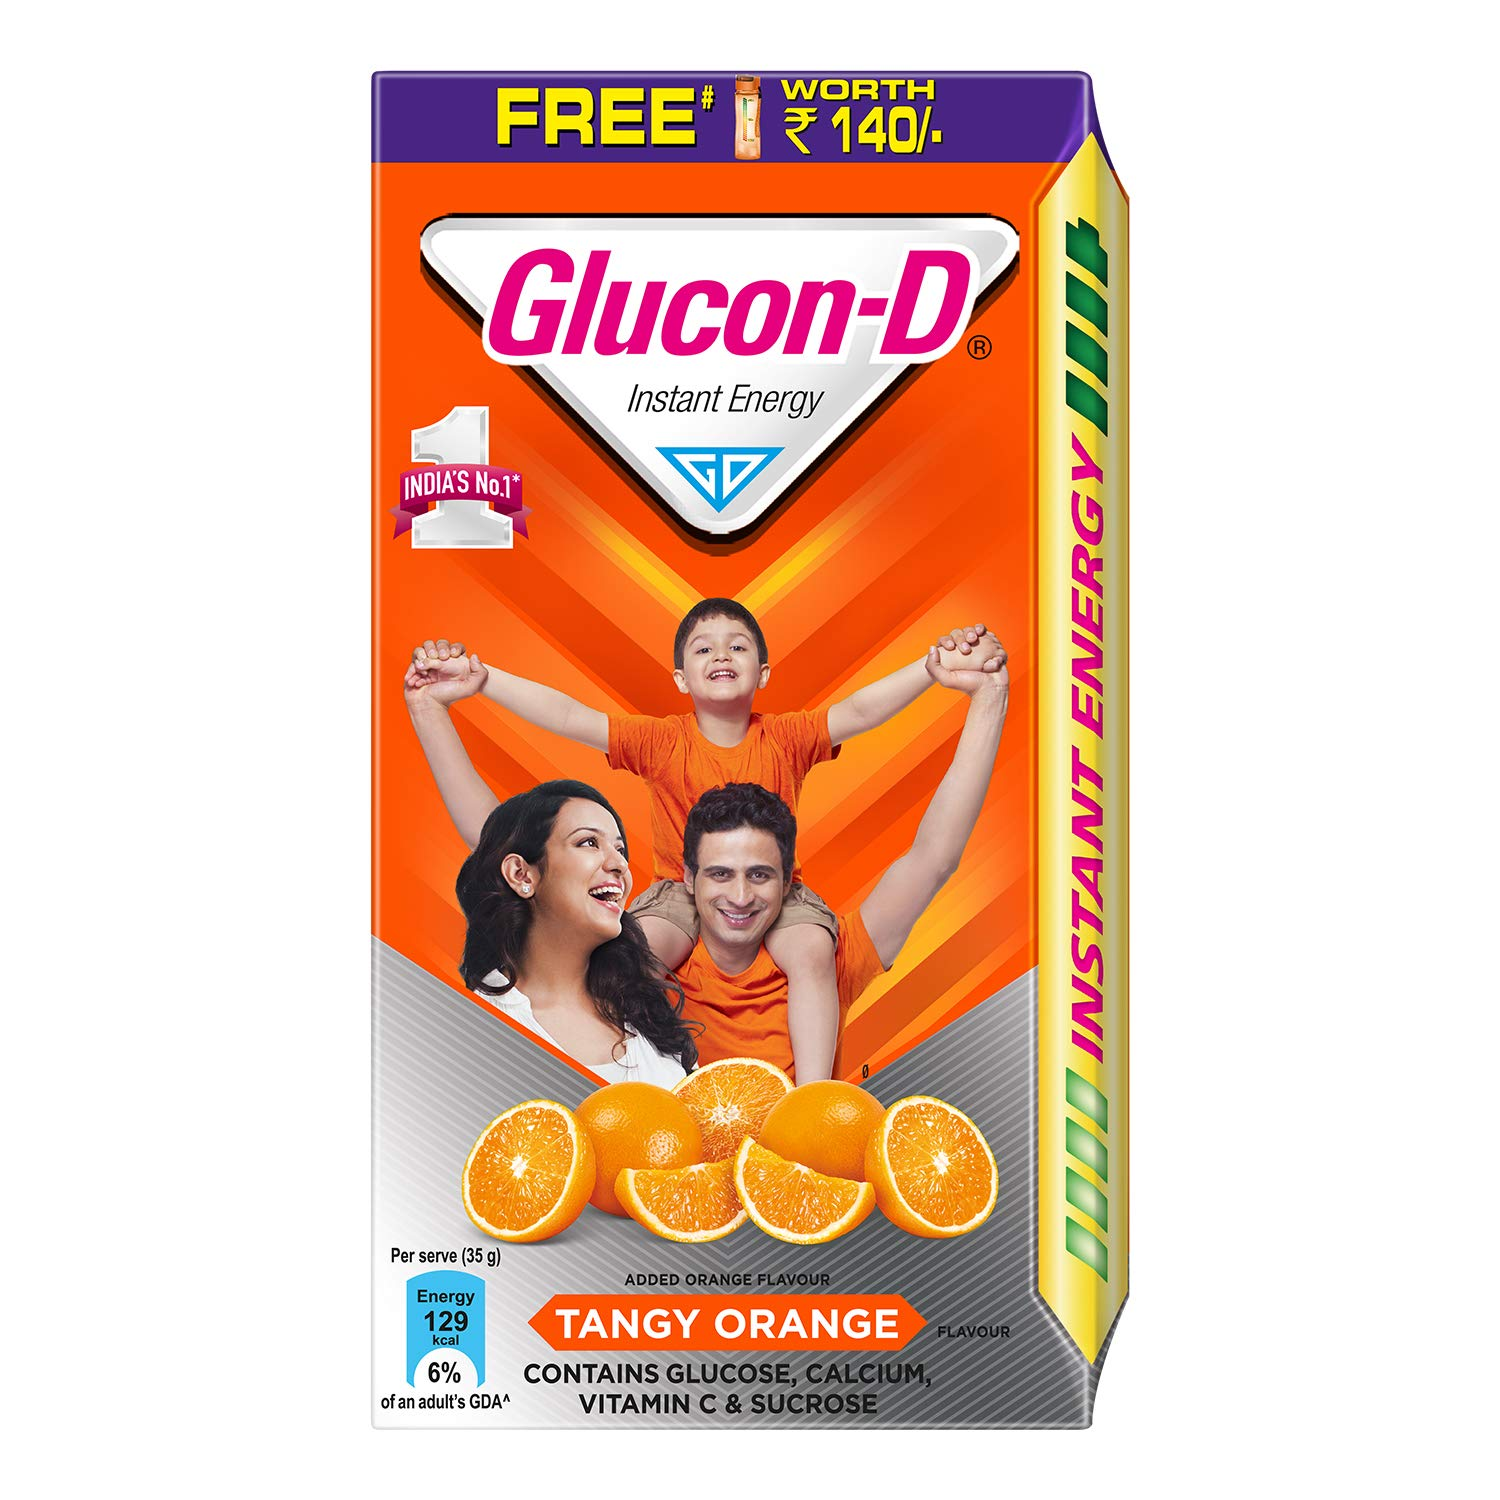 Glucon D Instant Energy Health Drink Tangy Orange - 1kg Refill with free bottle